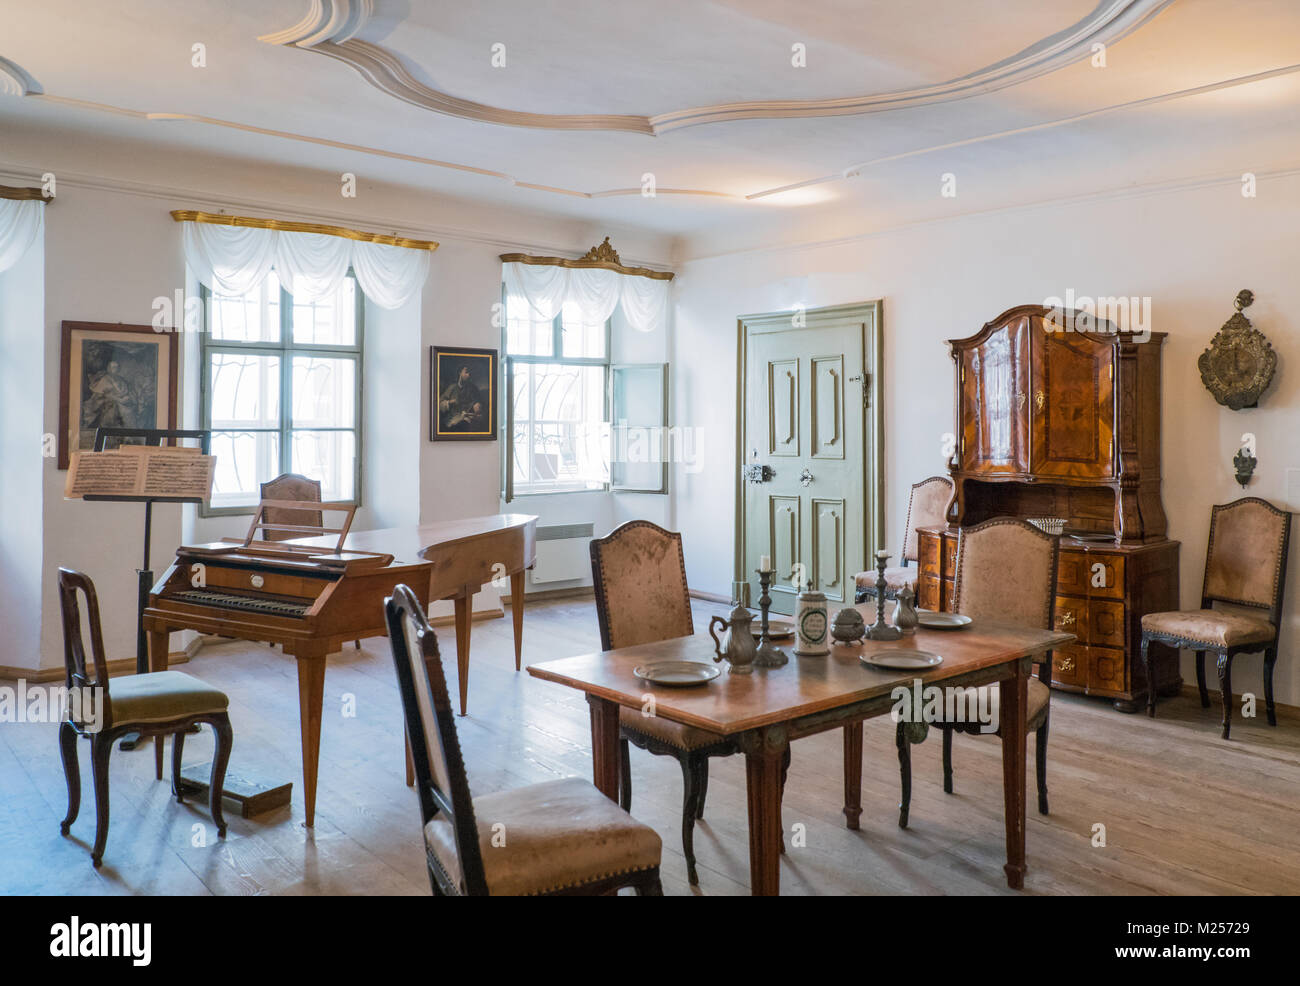 Austria, Salzburg, Antique furniture and an ancient harpsichord in the W. A. Mozart home - Stock Image